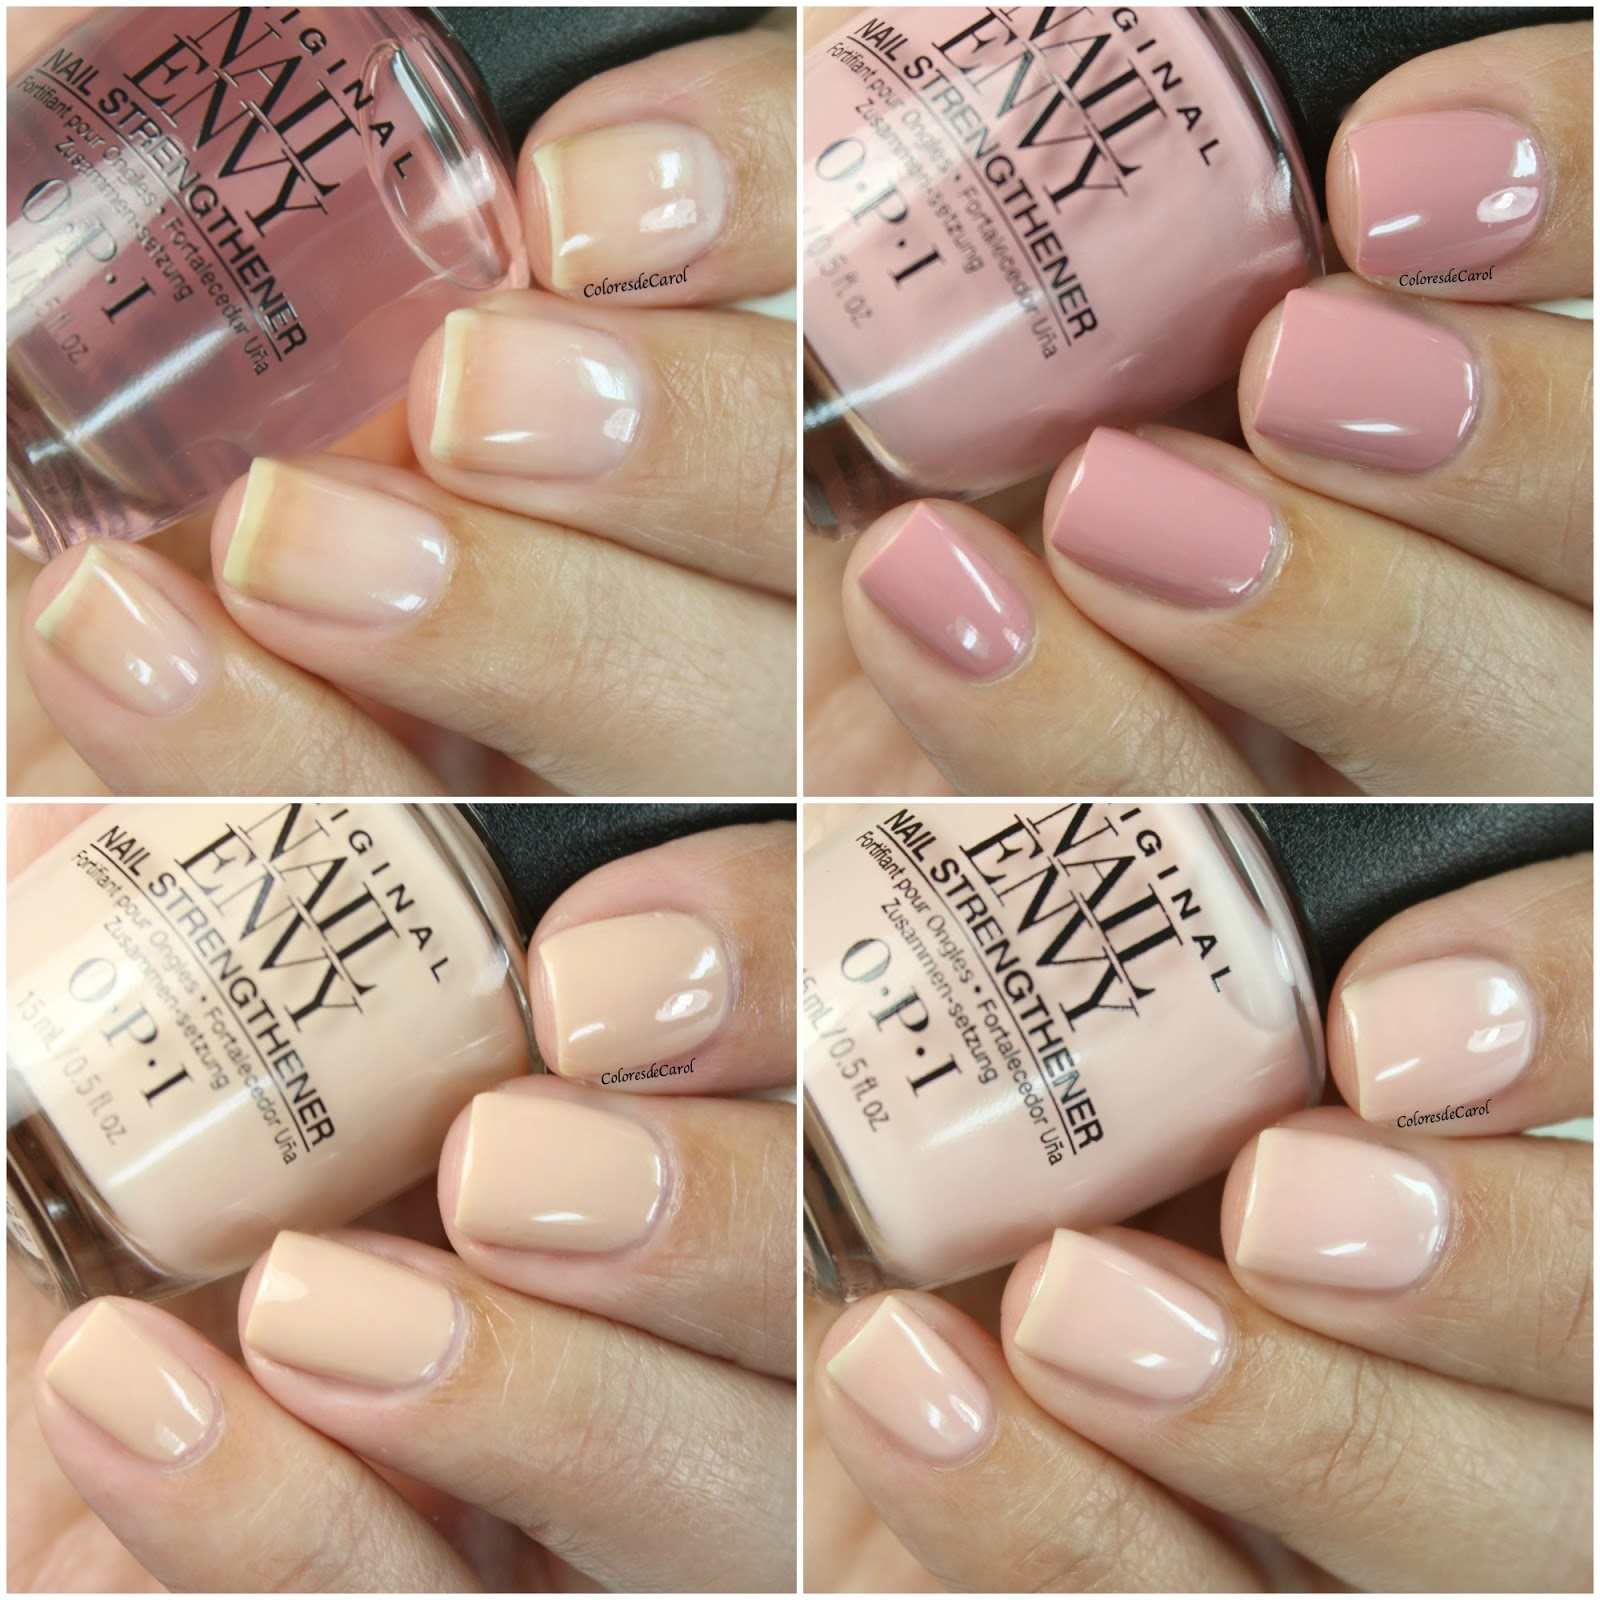 Colores de Carol: OPI Nail Envy, Strength + Color